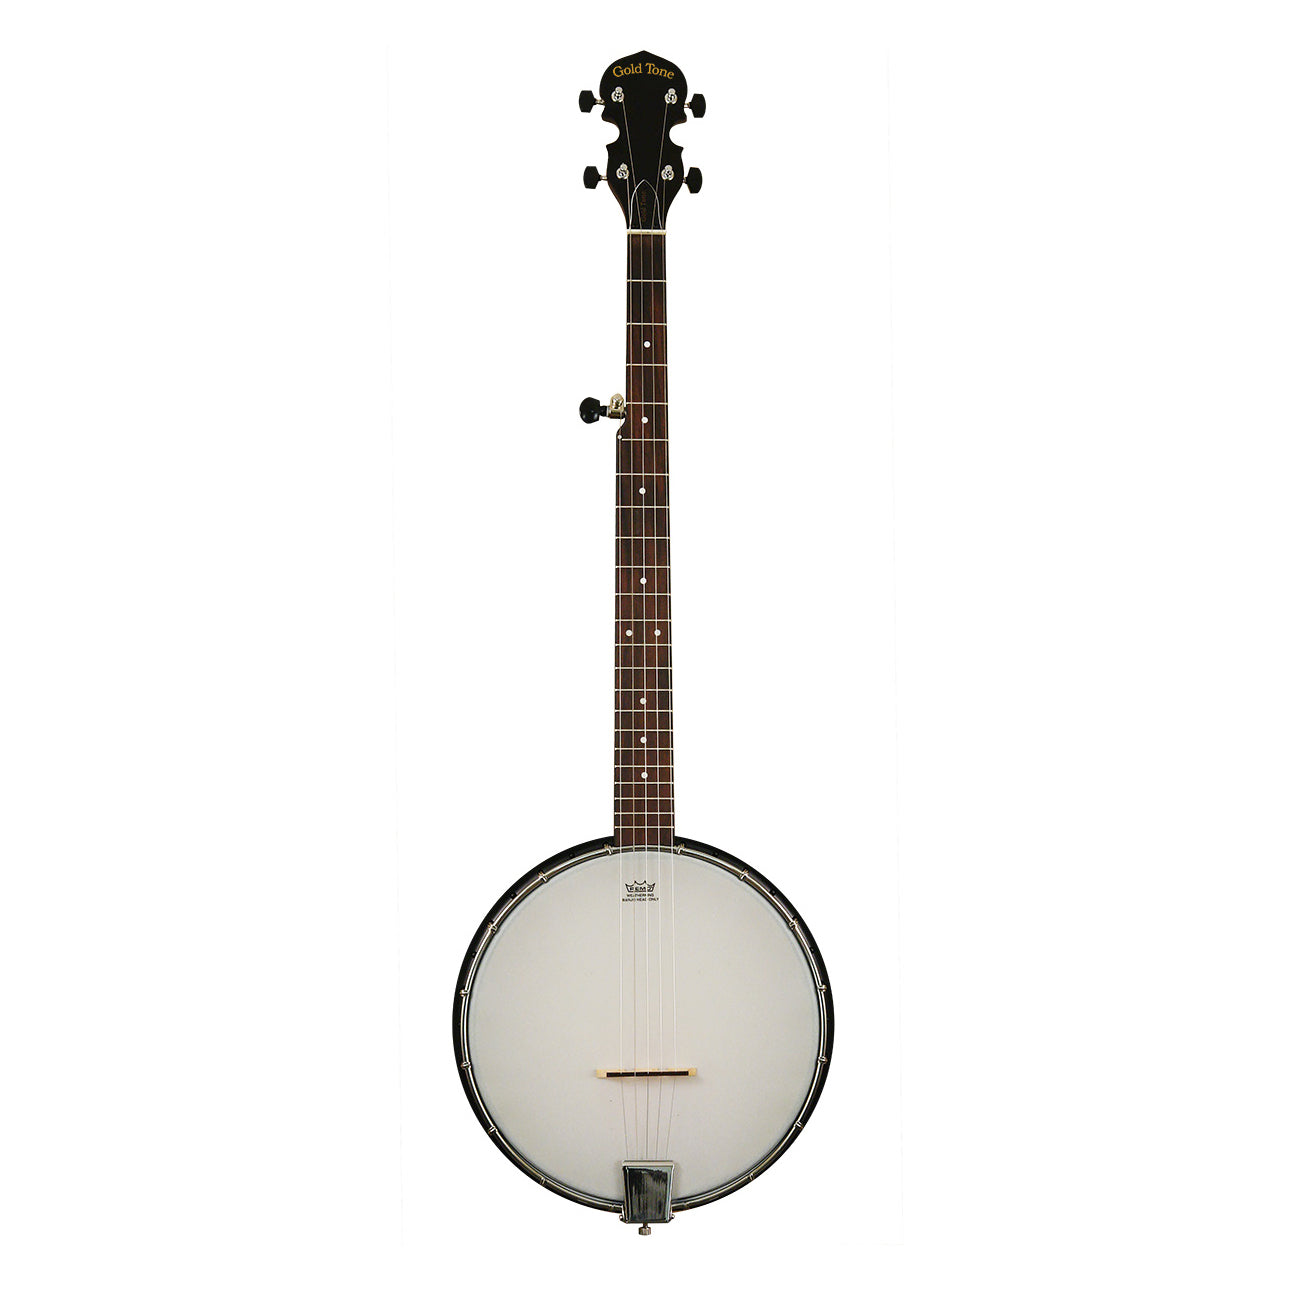 Gold Tone AC-1 Acoustic Composite 5- String Open Back Banjo with bag